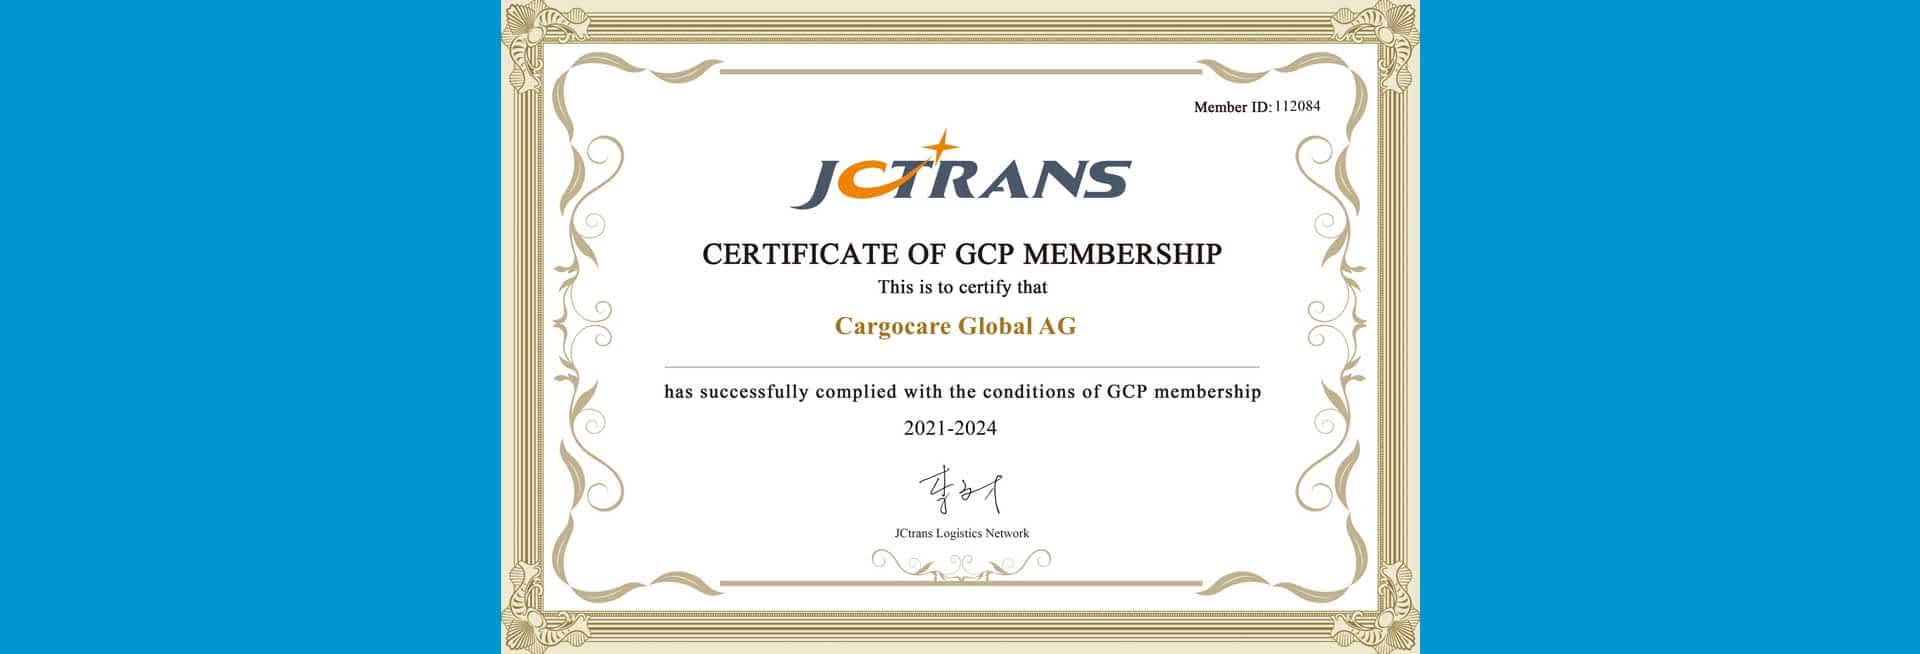 JCtrans Certificate of GCP Membership 1